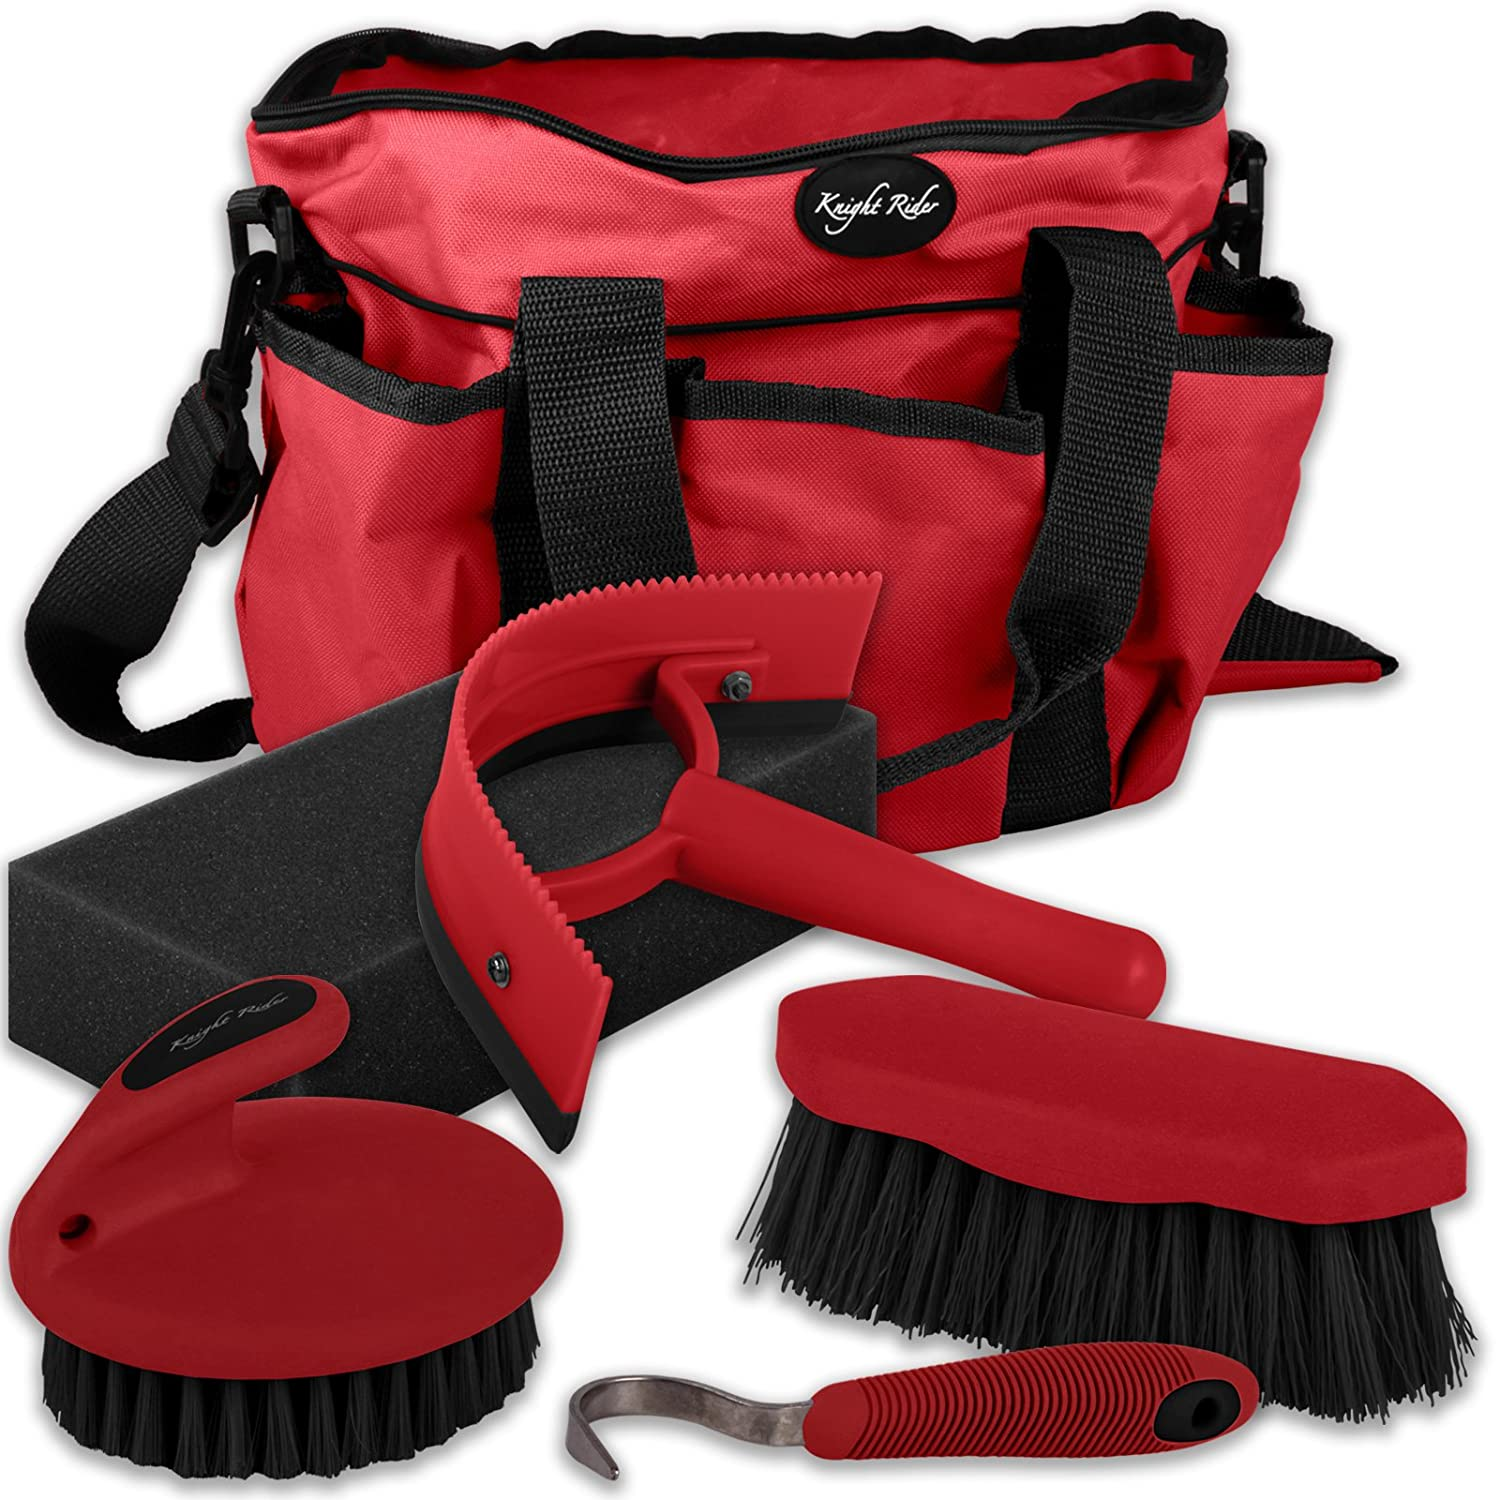 5 Piece Horse Pony Cob Grooming Kit Tack Bag Gift Set Stable Travel AND Tigerbox® Antibacterial Pen! Knight Rider